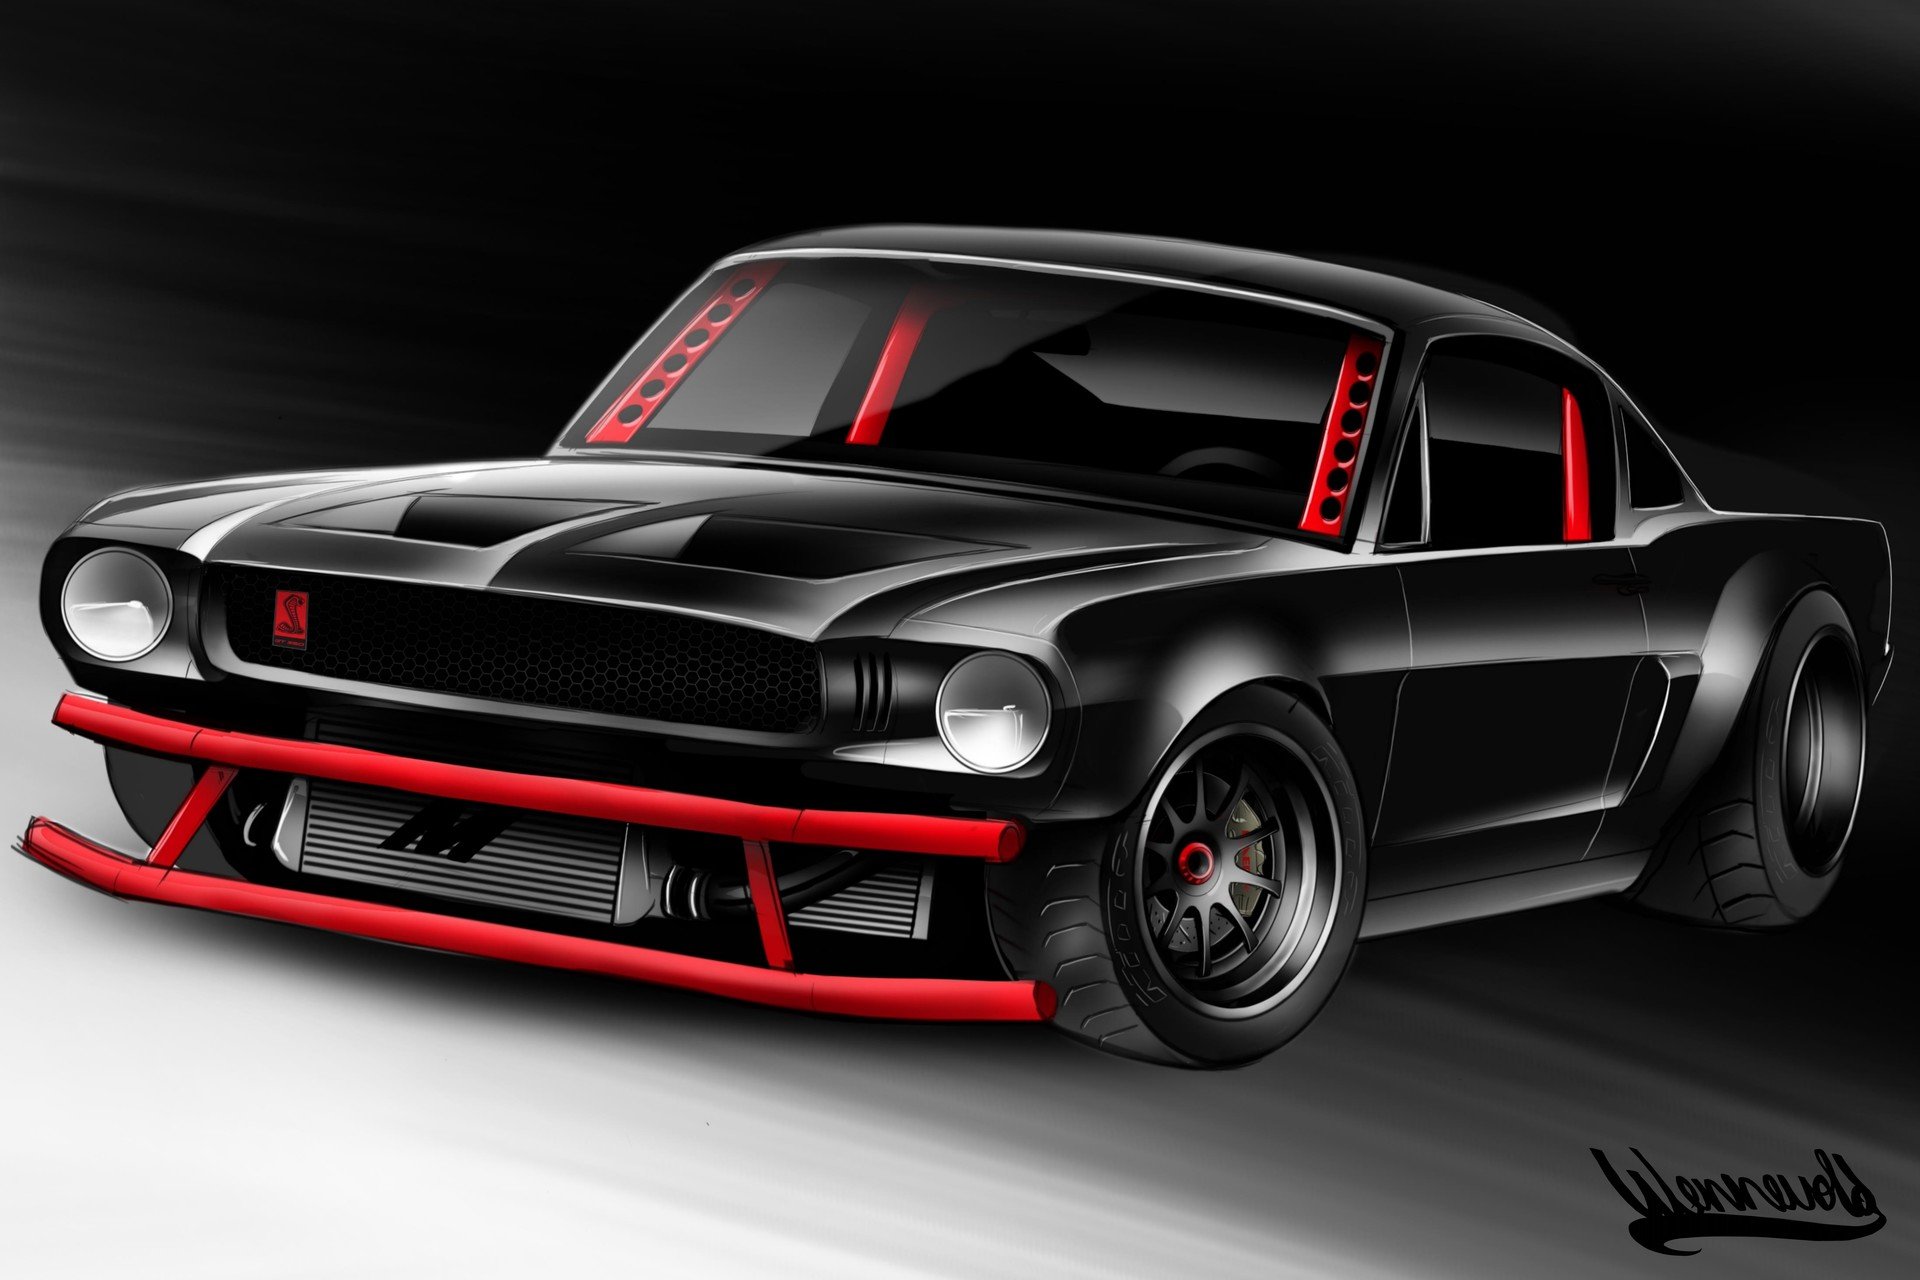 Andreas hoas wennevold mustang andreashoaswennevold